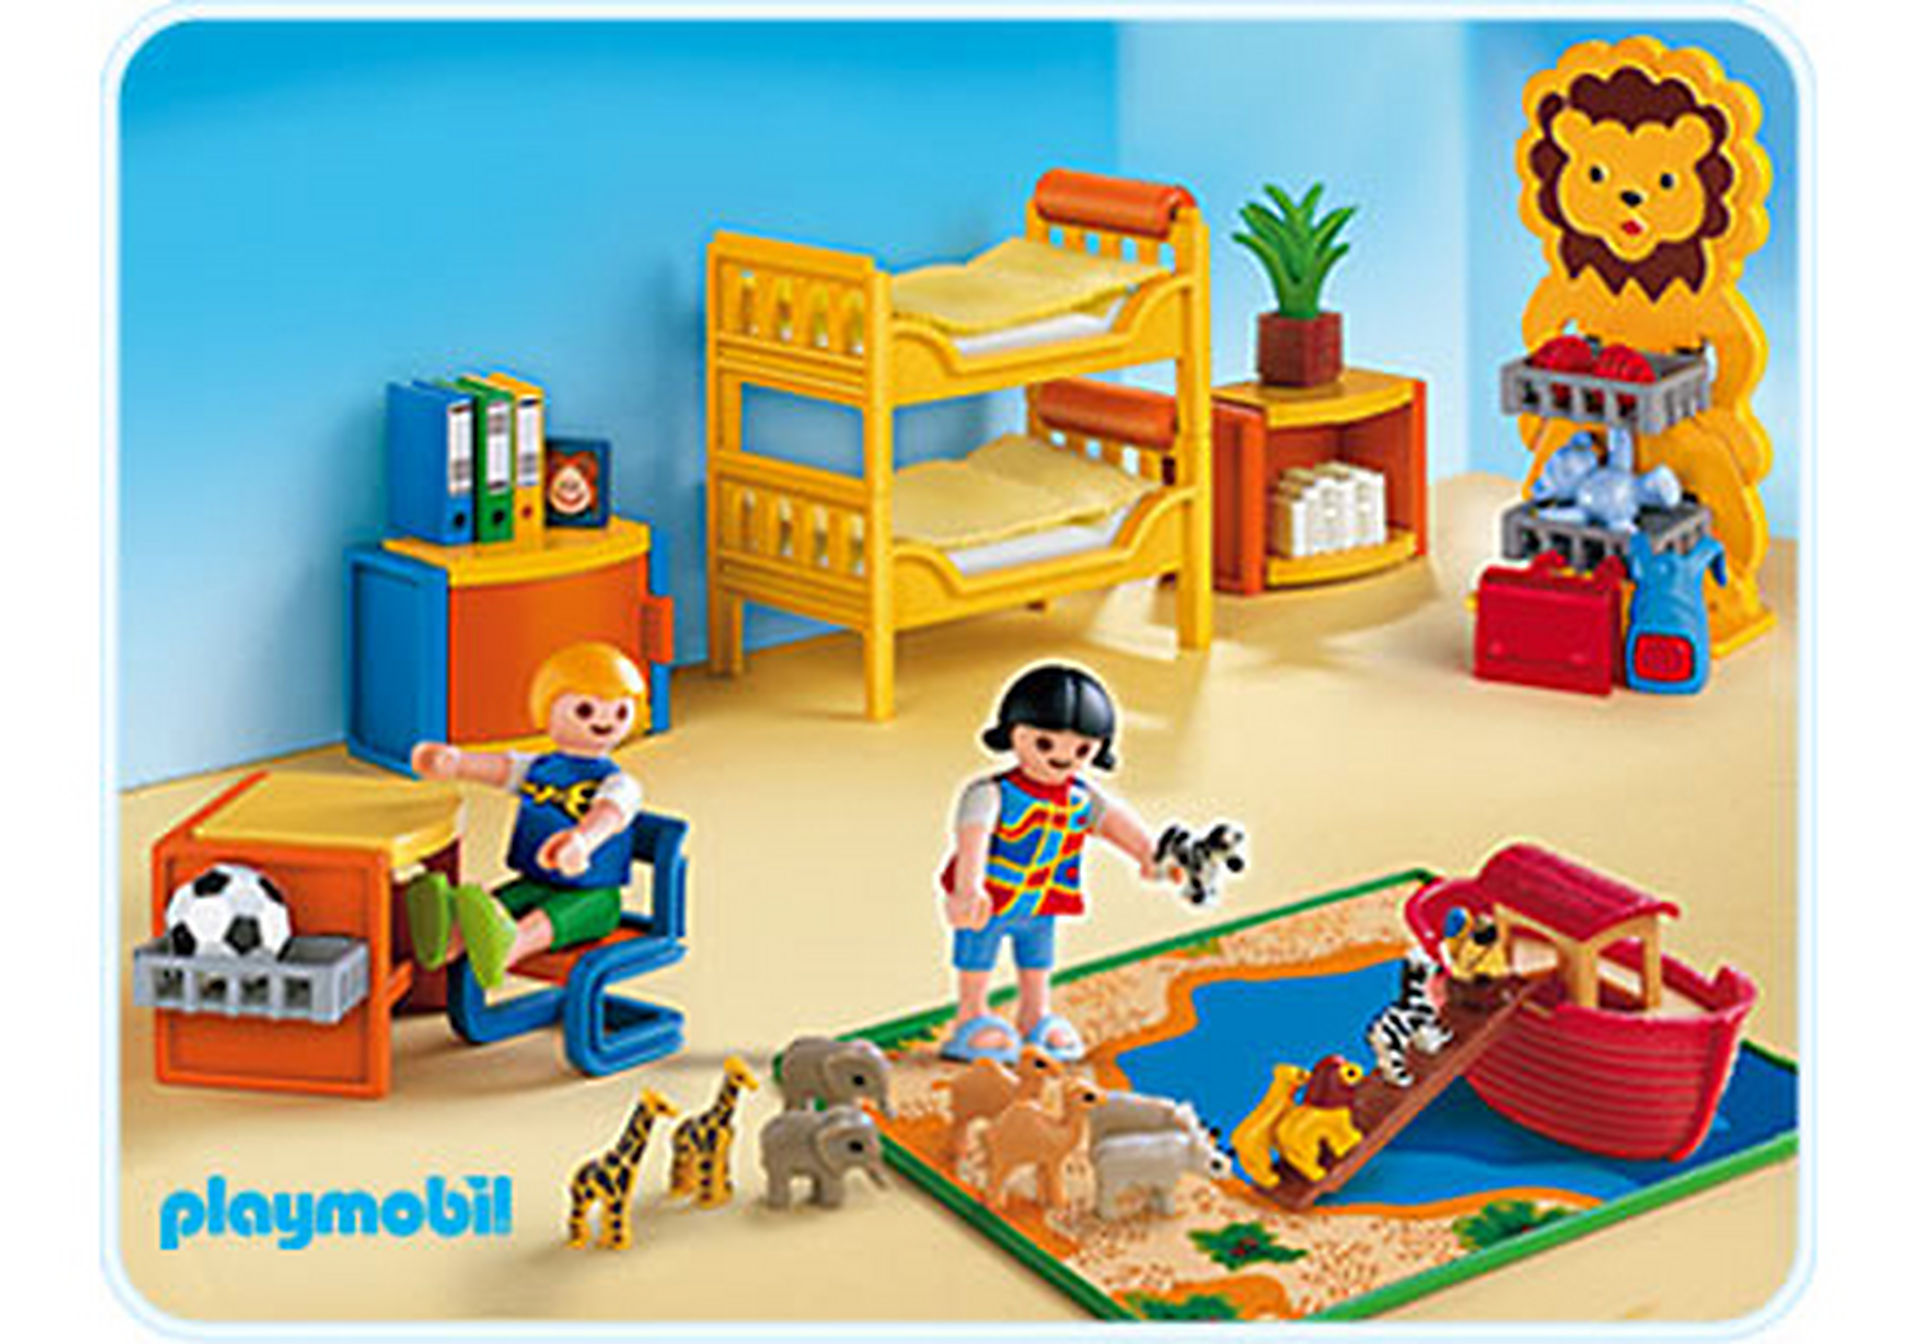 http://media.playmobil.com/i/playmobil/4287-A_product_detail/Kinderspielzimmer